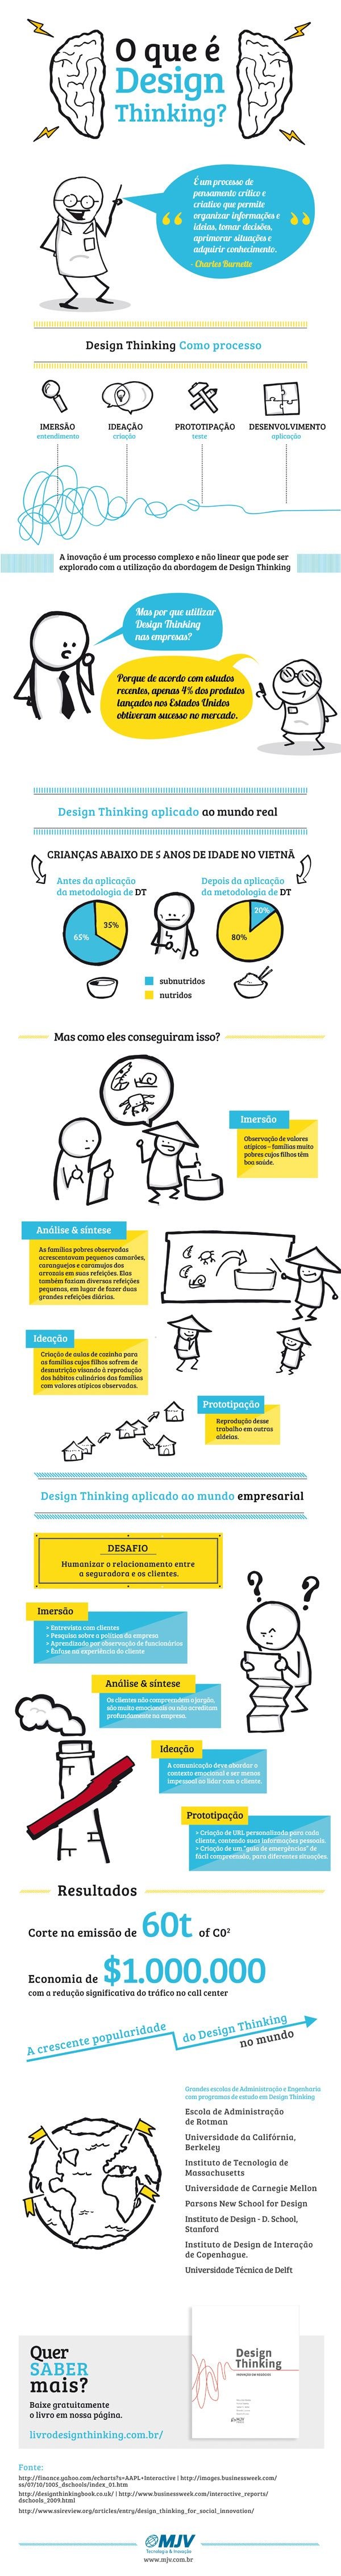 Design thinking para ver e entender | Webinsider